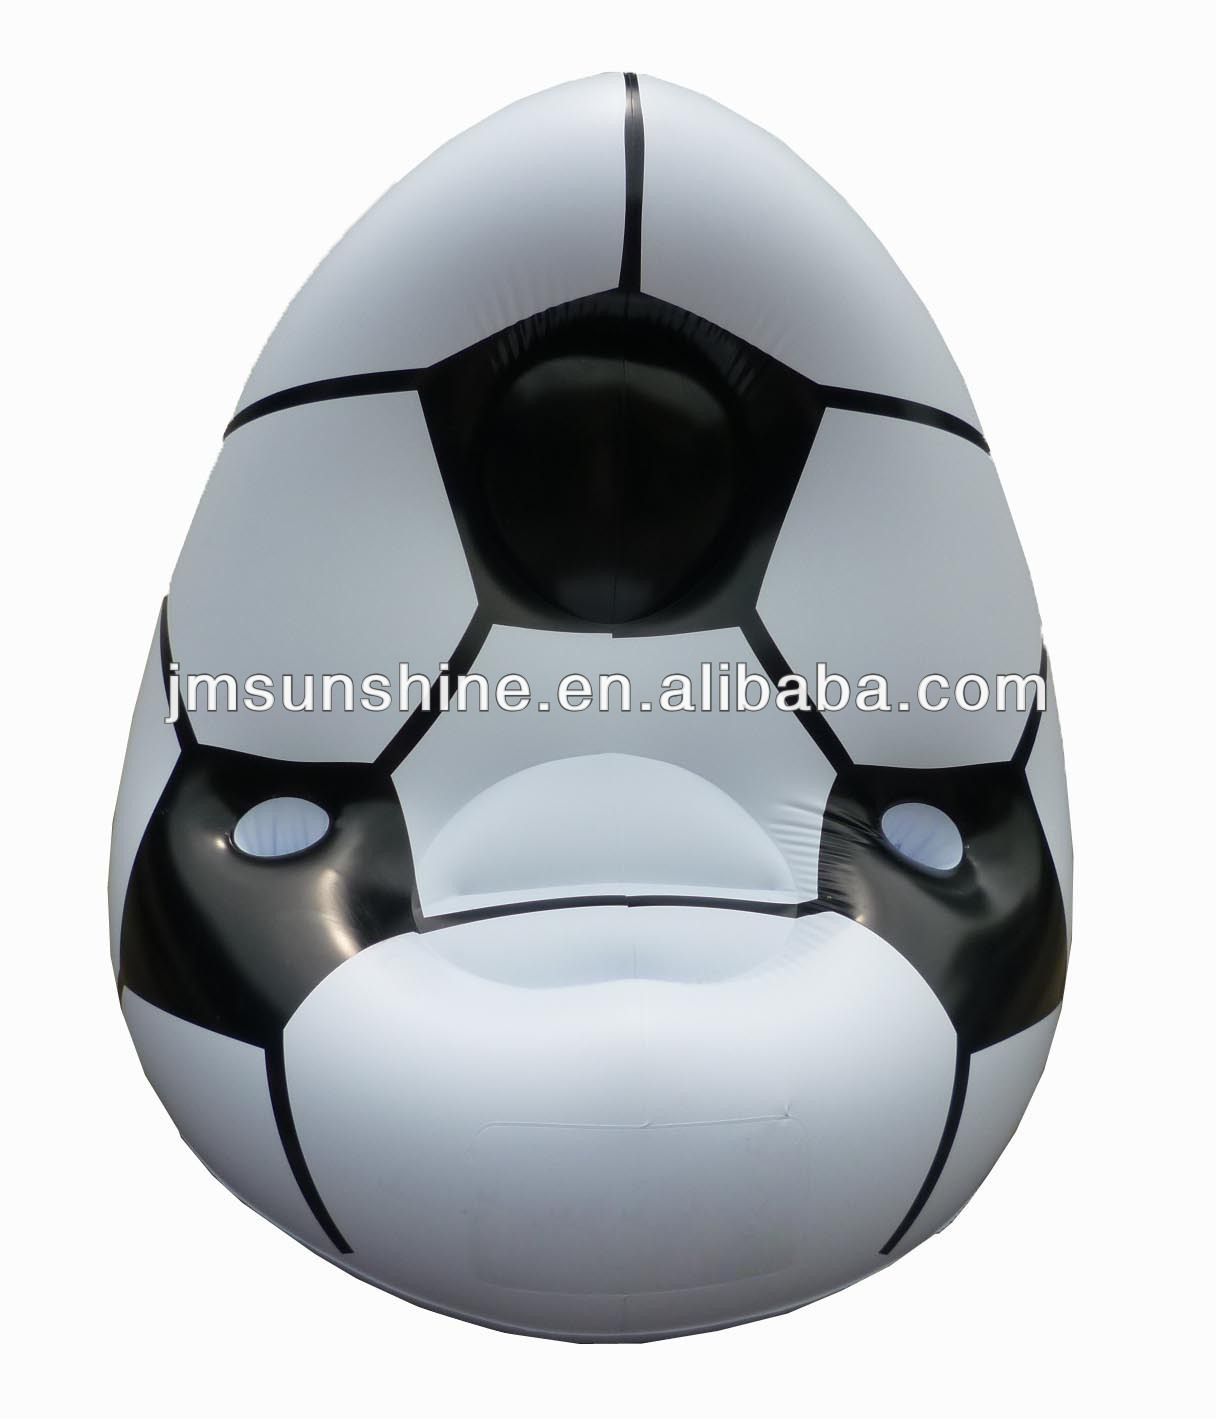 Inflatable Football Chair